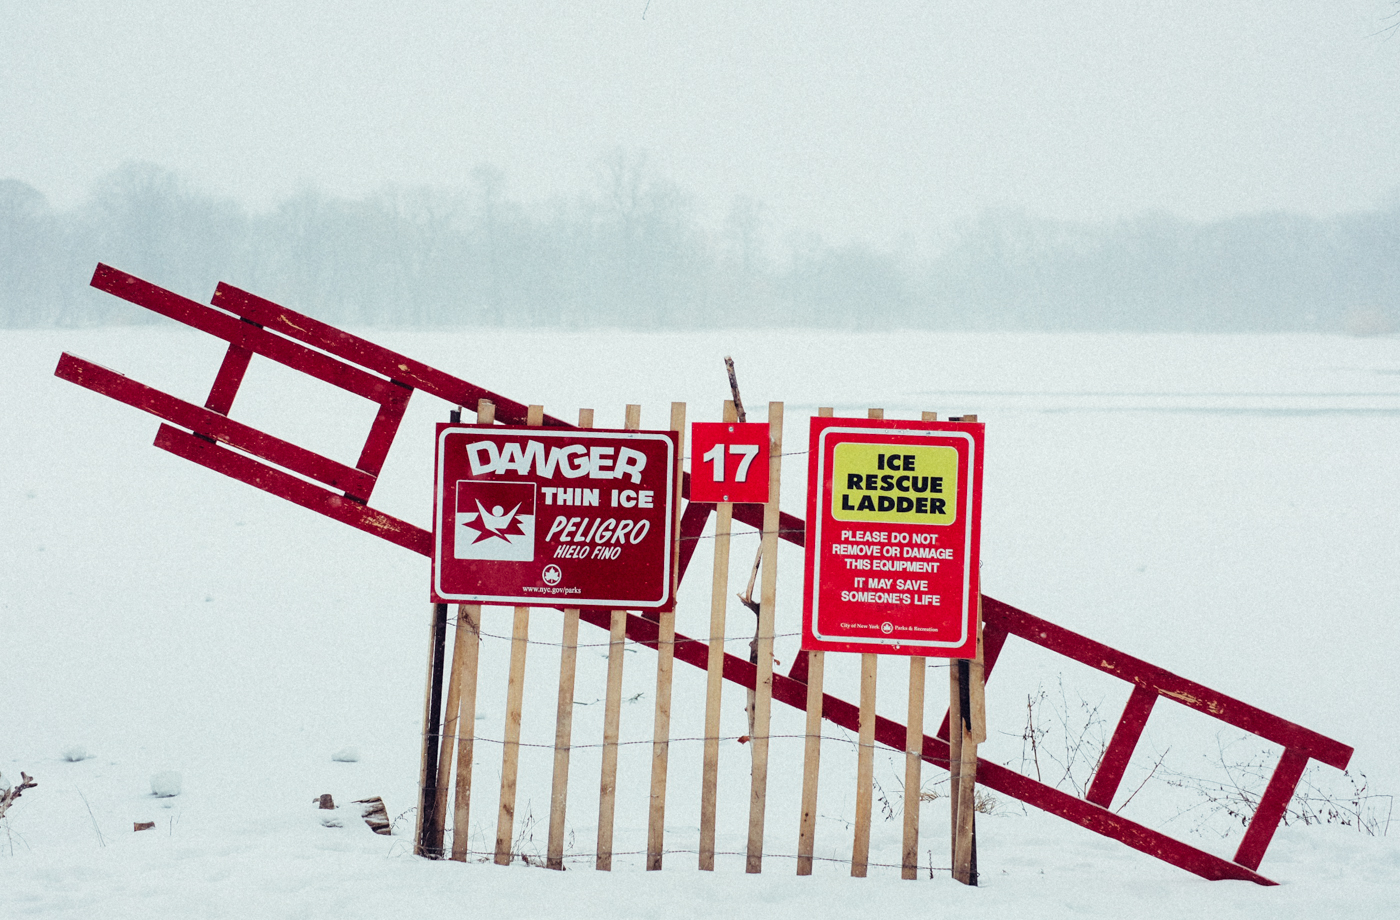 Ice Rescue Ladder